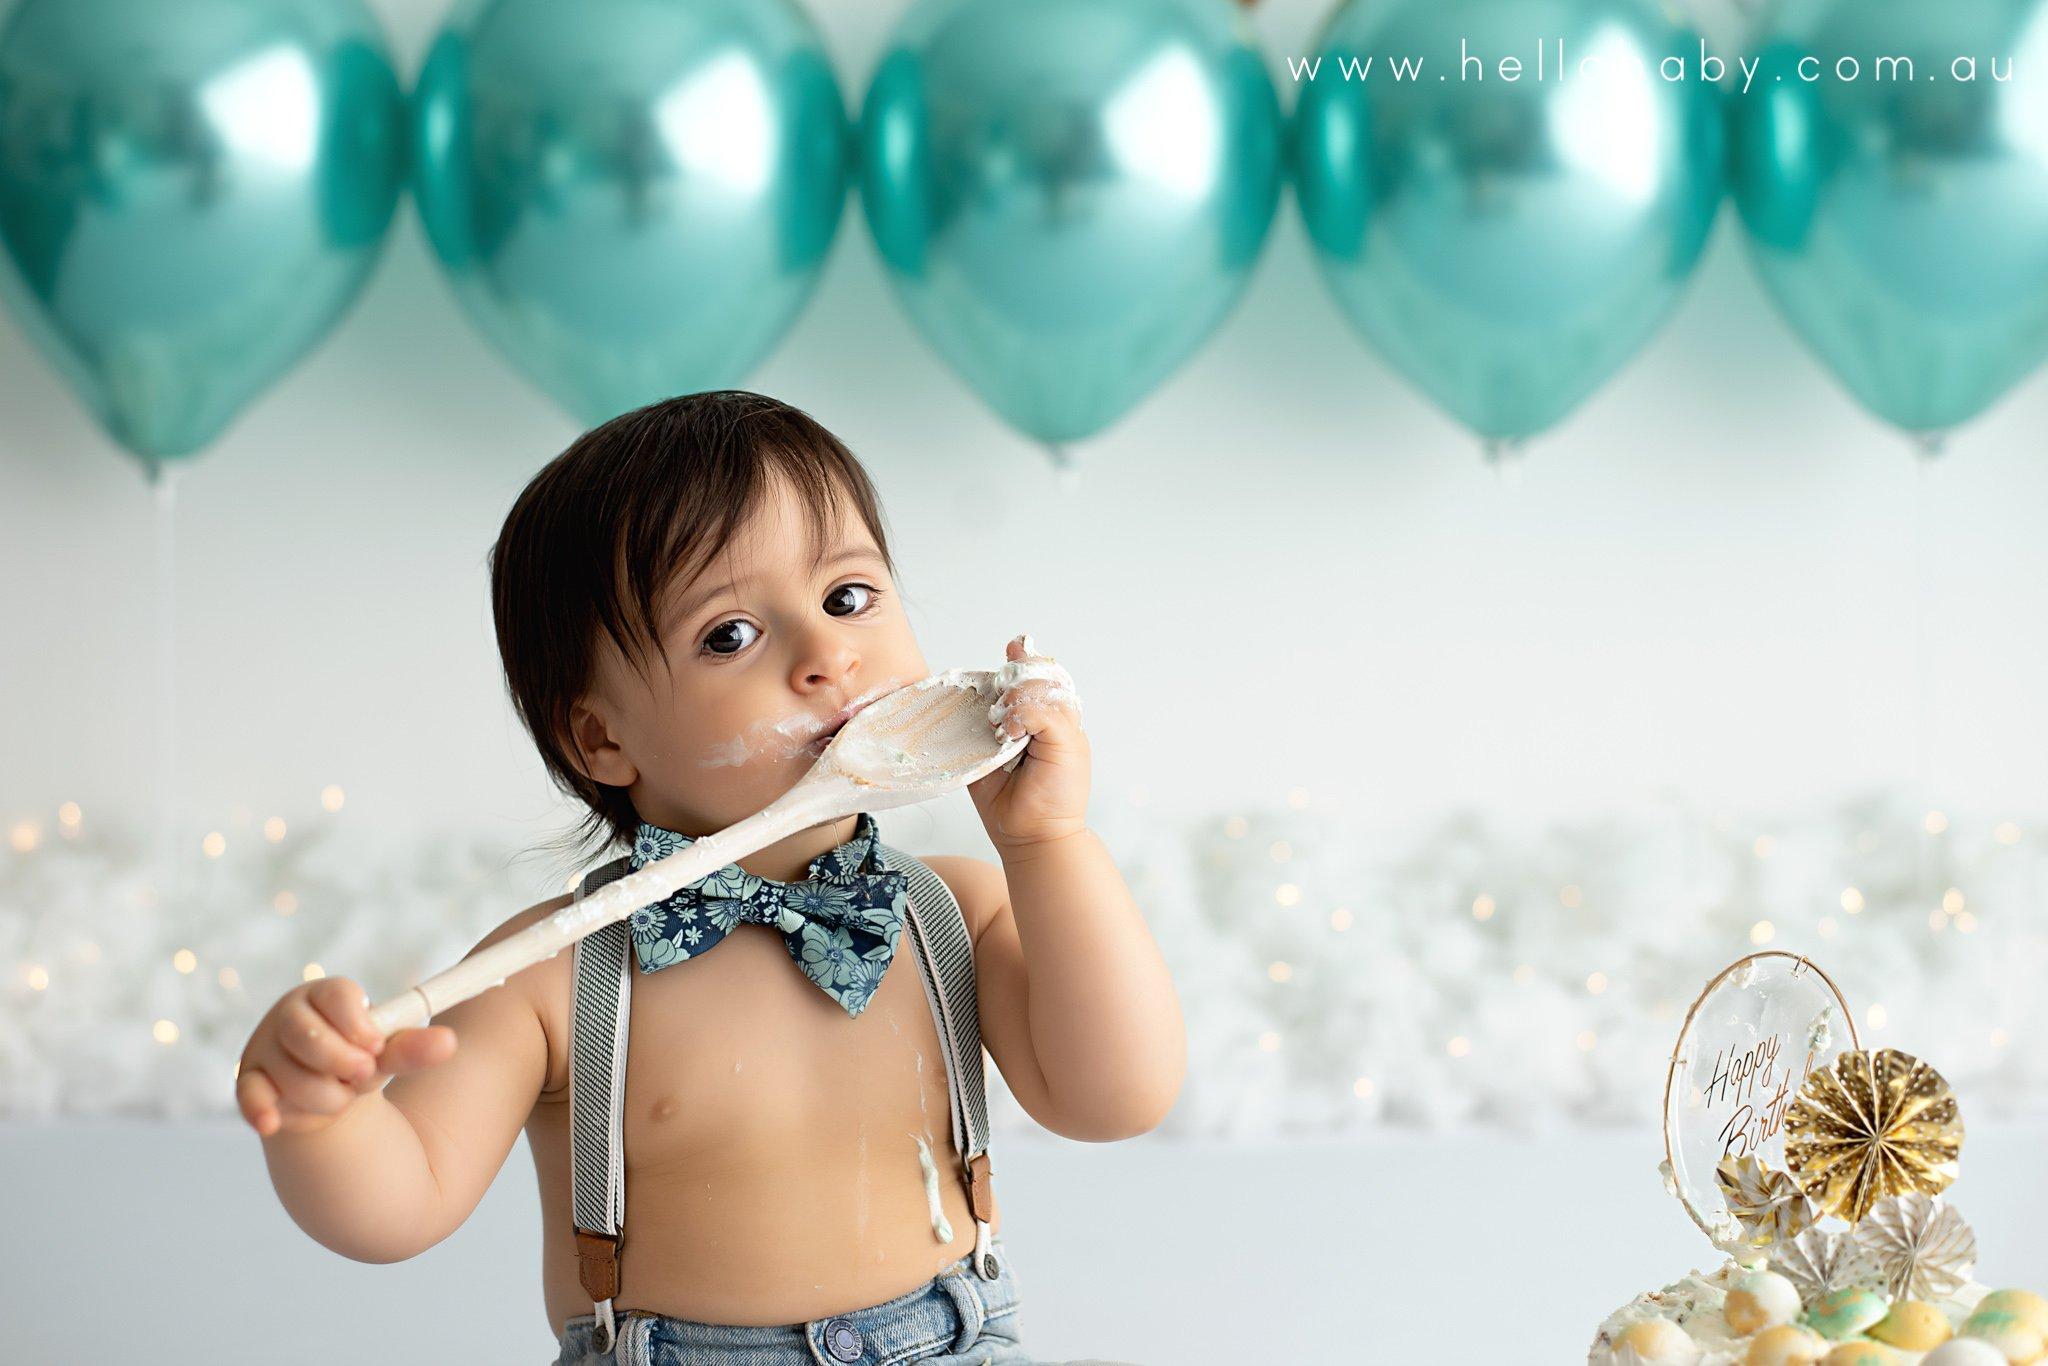 a little boy wearing a pair of jeans and a bow tie sitting on a white floor next to a birthday cake licking a wooden spoon